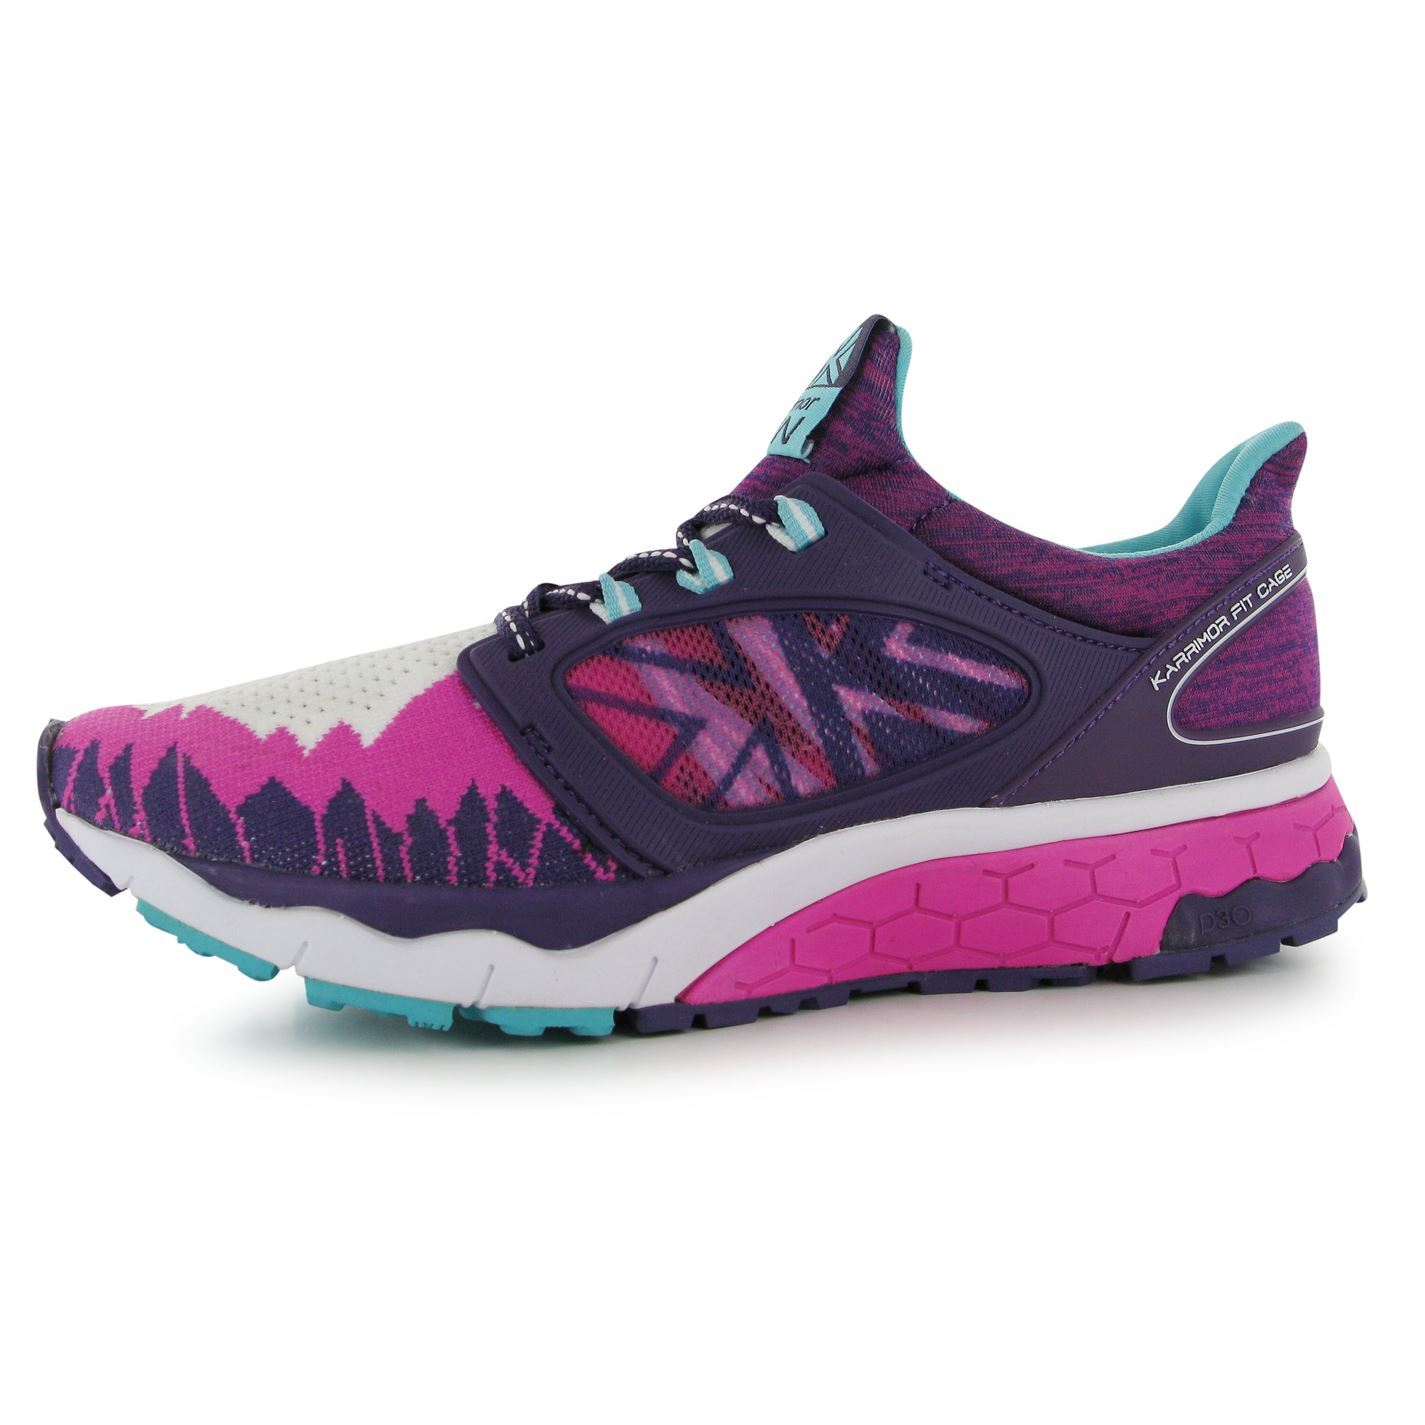 ... Karrimor Excel 2 Support Running Shoes Womens Pnk Purp Aq Trainers  Sneakers ... 07a96678c